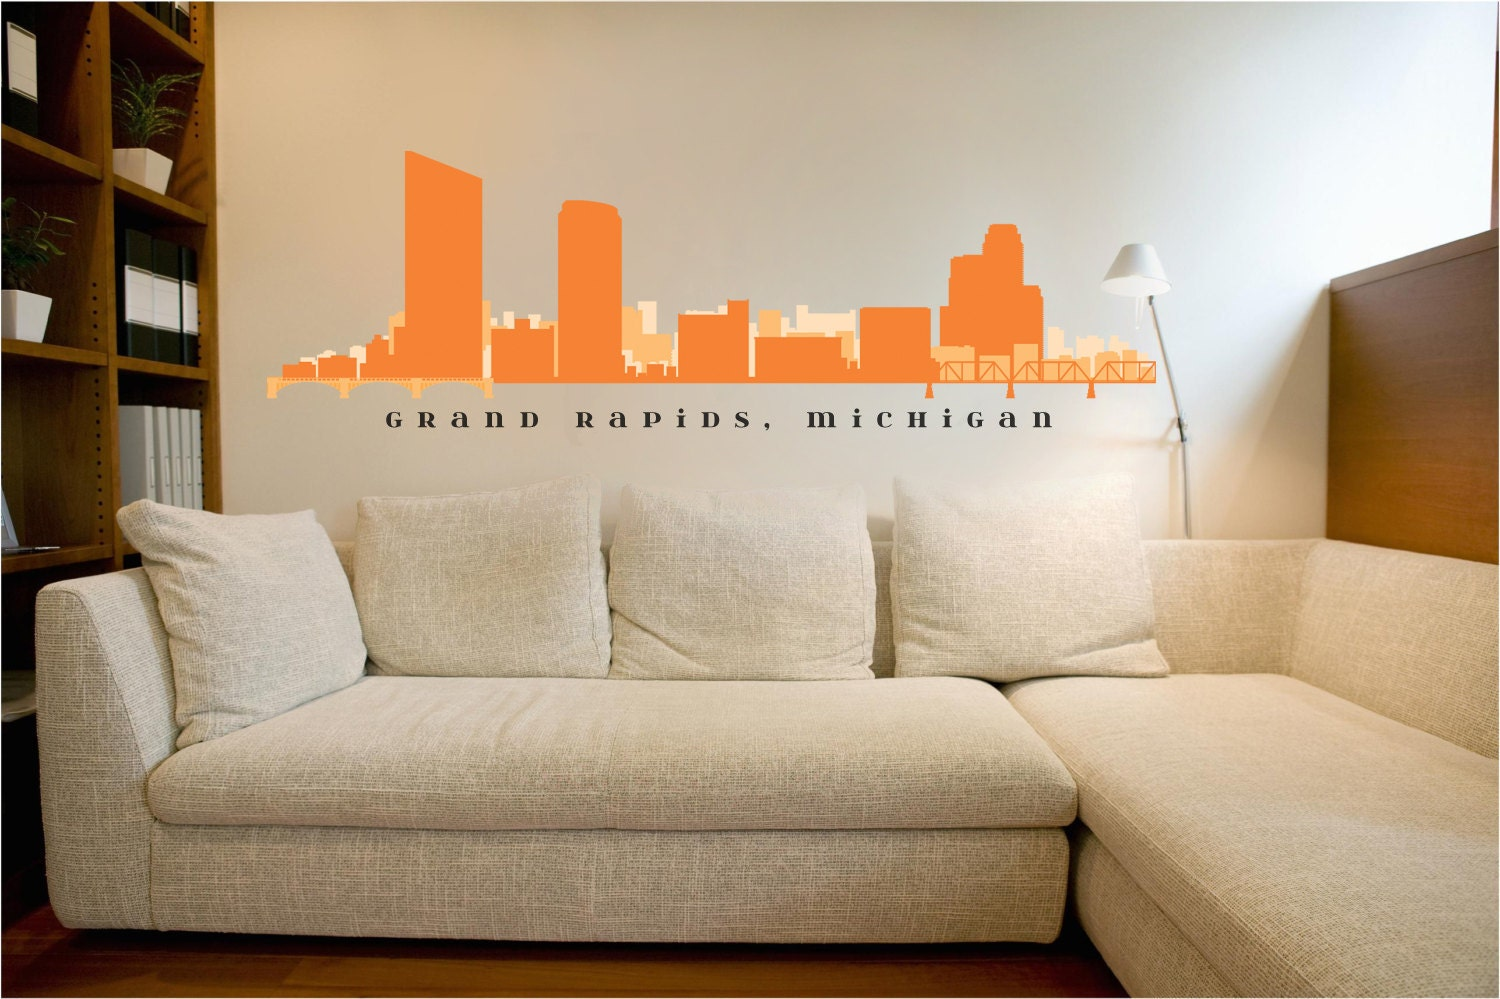 Grand rapids michigan skyline wall decal art vinyl removable for Real estate office wall decor